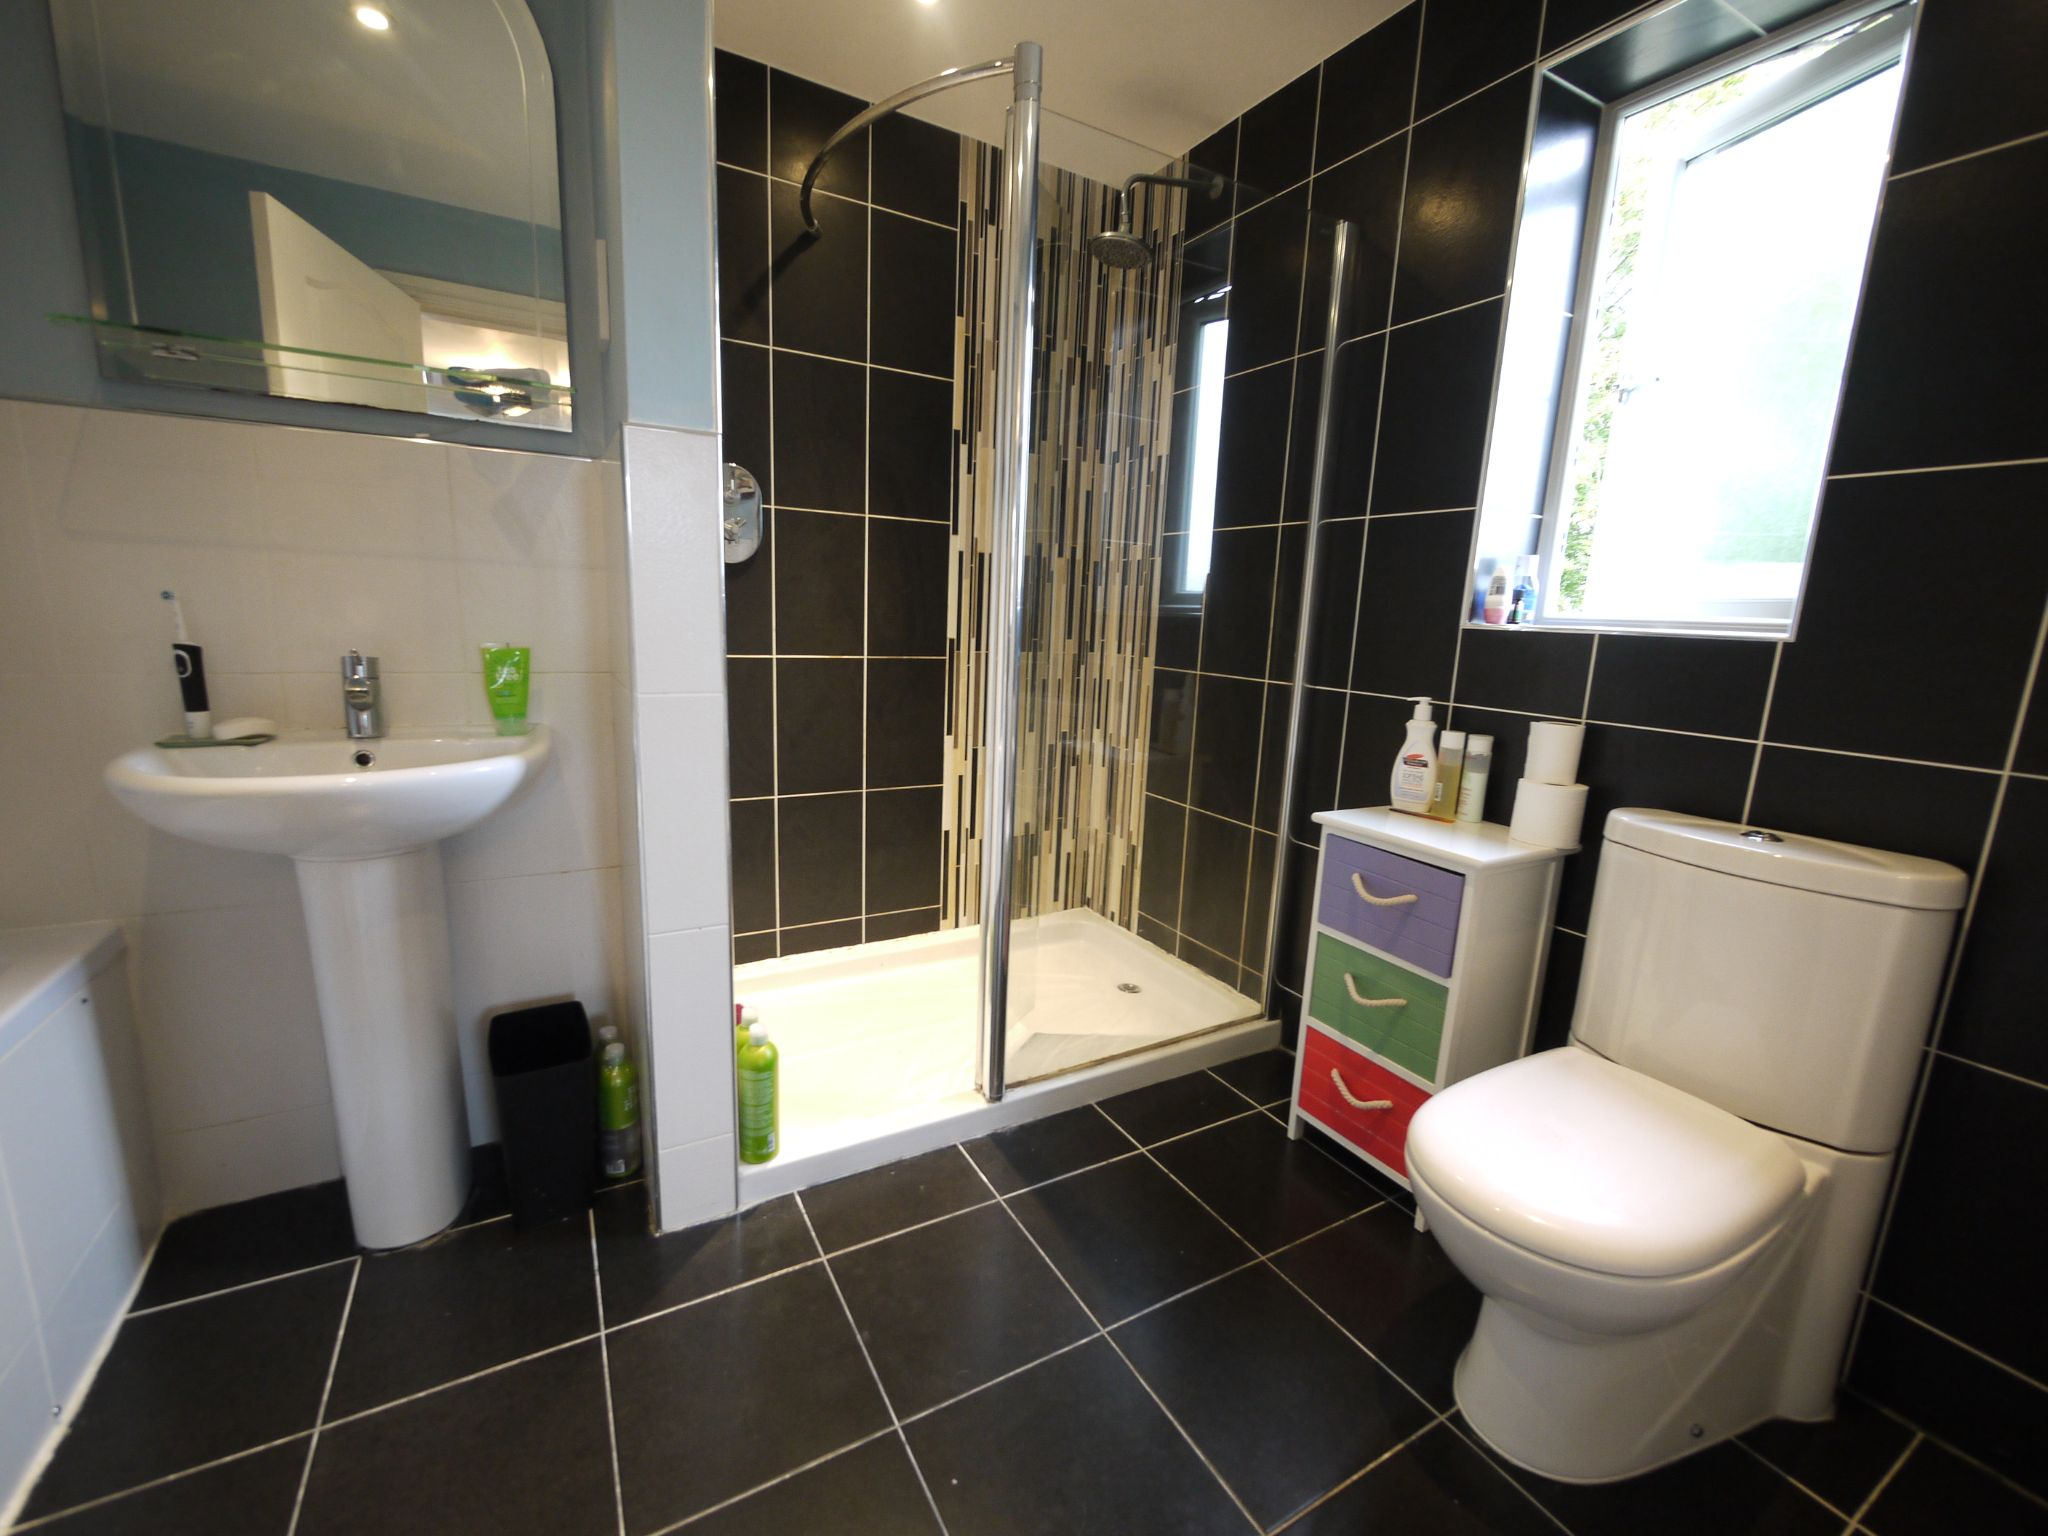 6 bedroom detached house SSTC in Halifax - bed 1 ensuite.